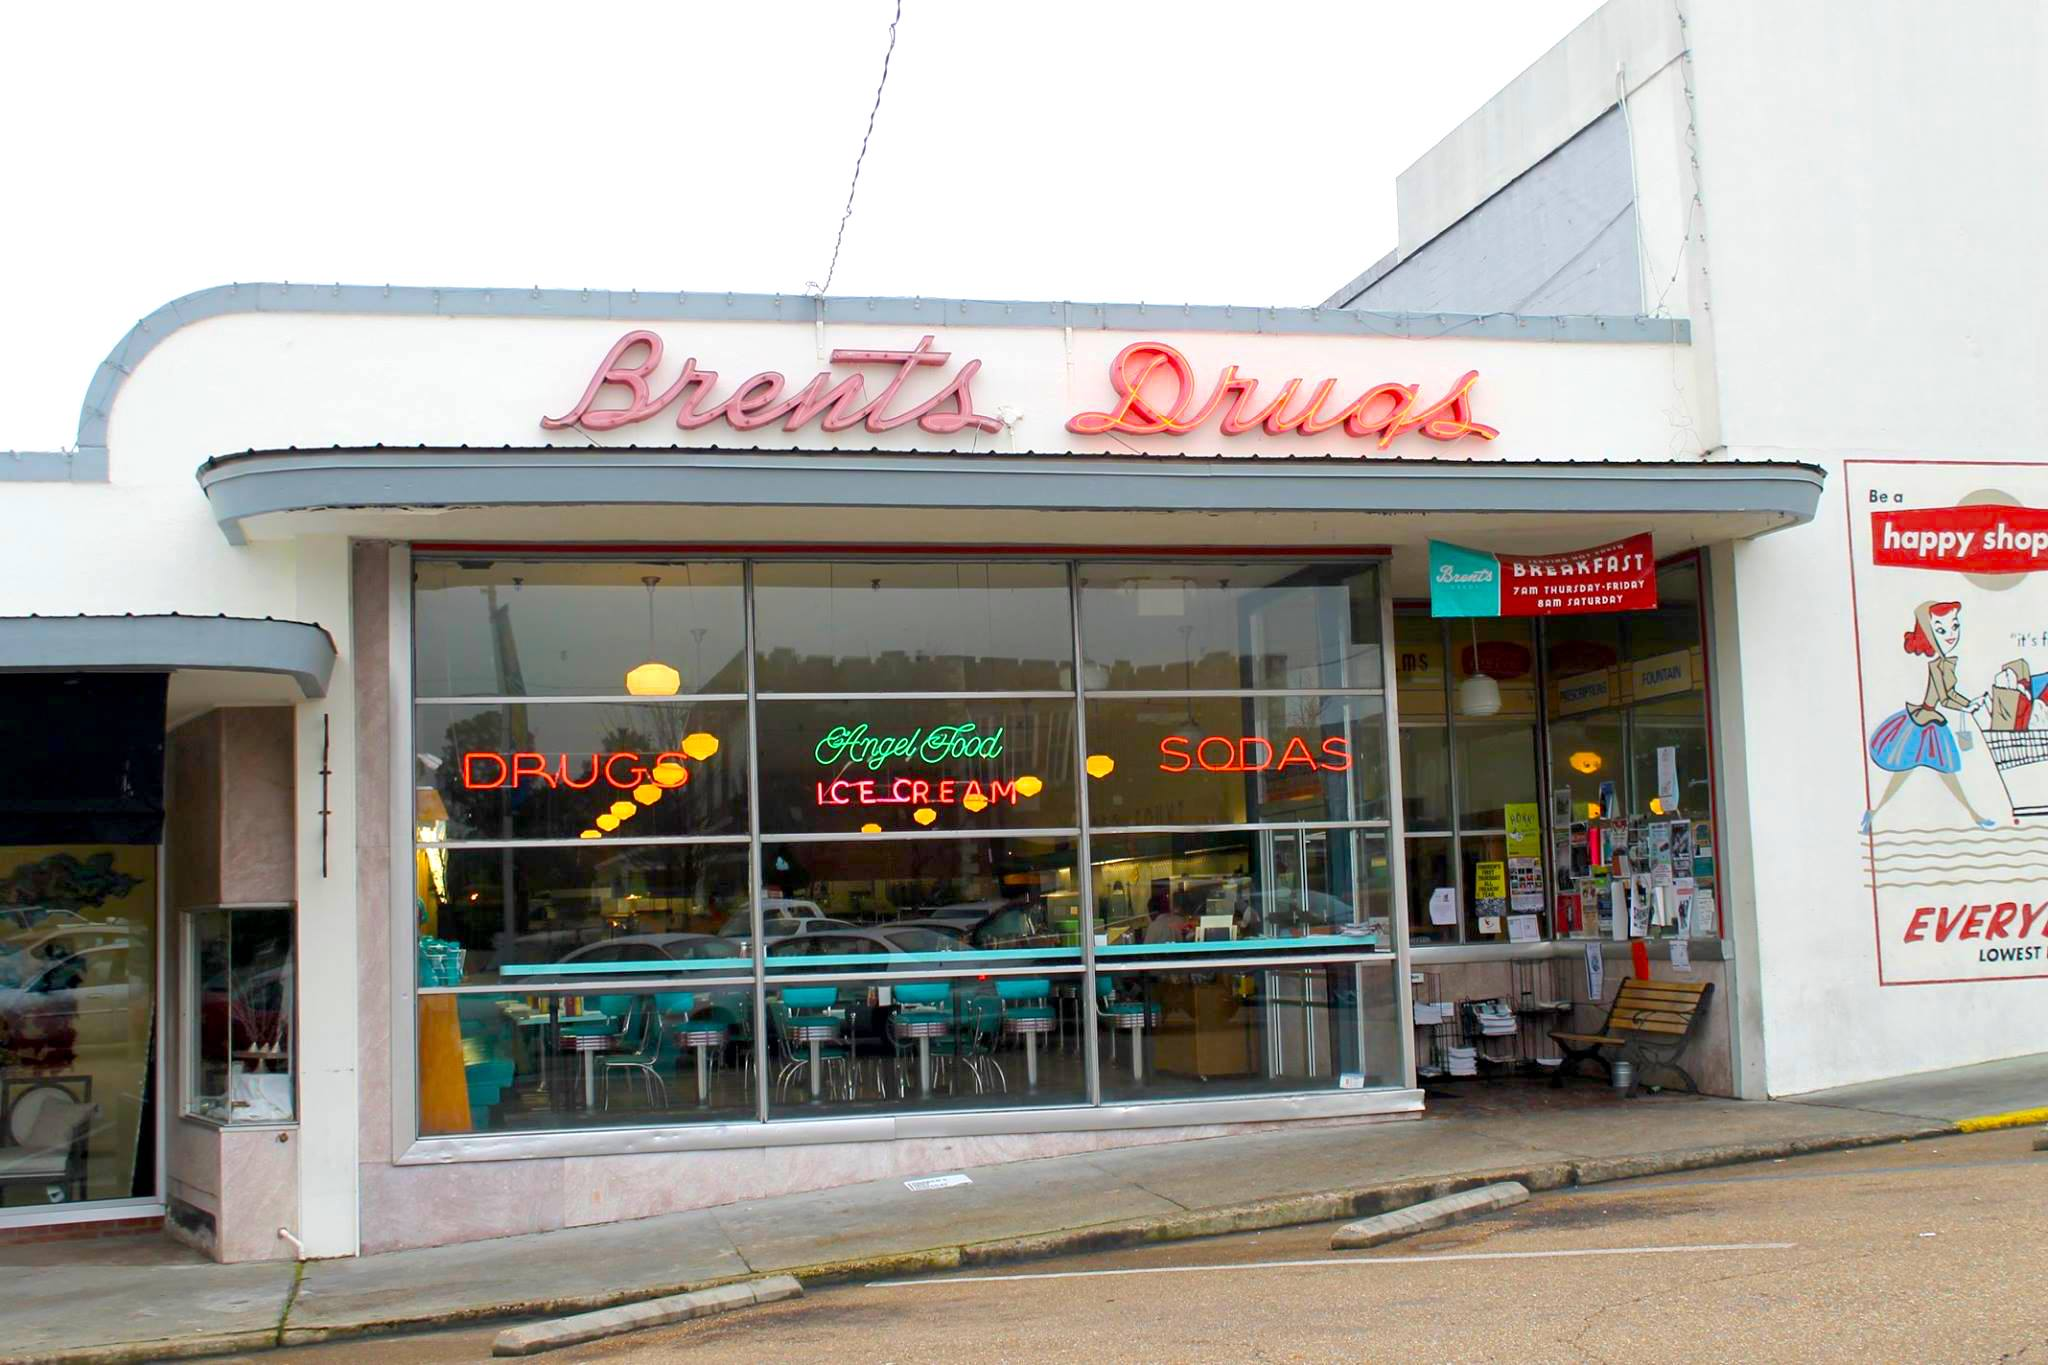 Cities In Ms >> You'll Absolutely Love This 50s Themed Diner In Mississippi